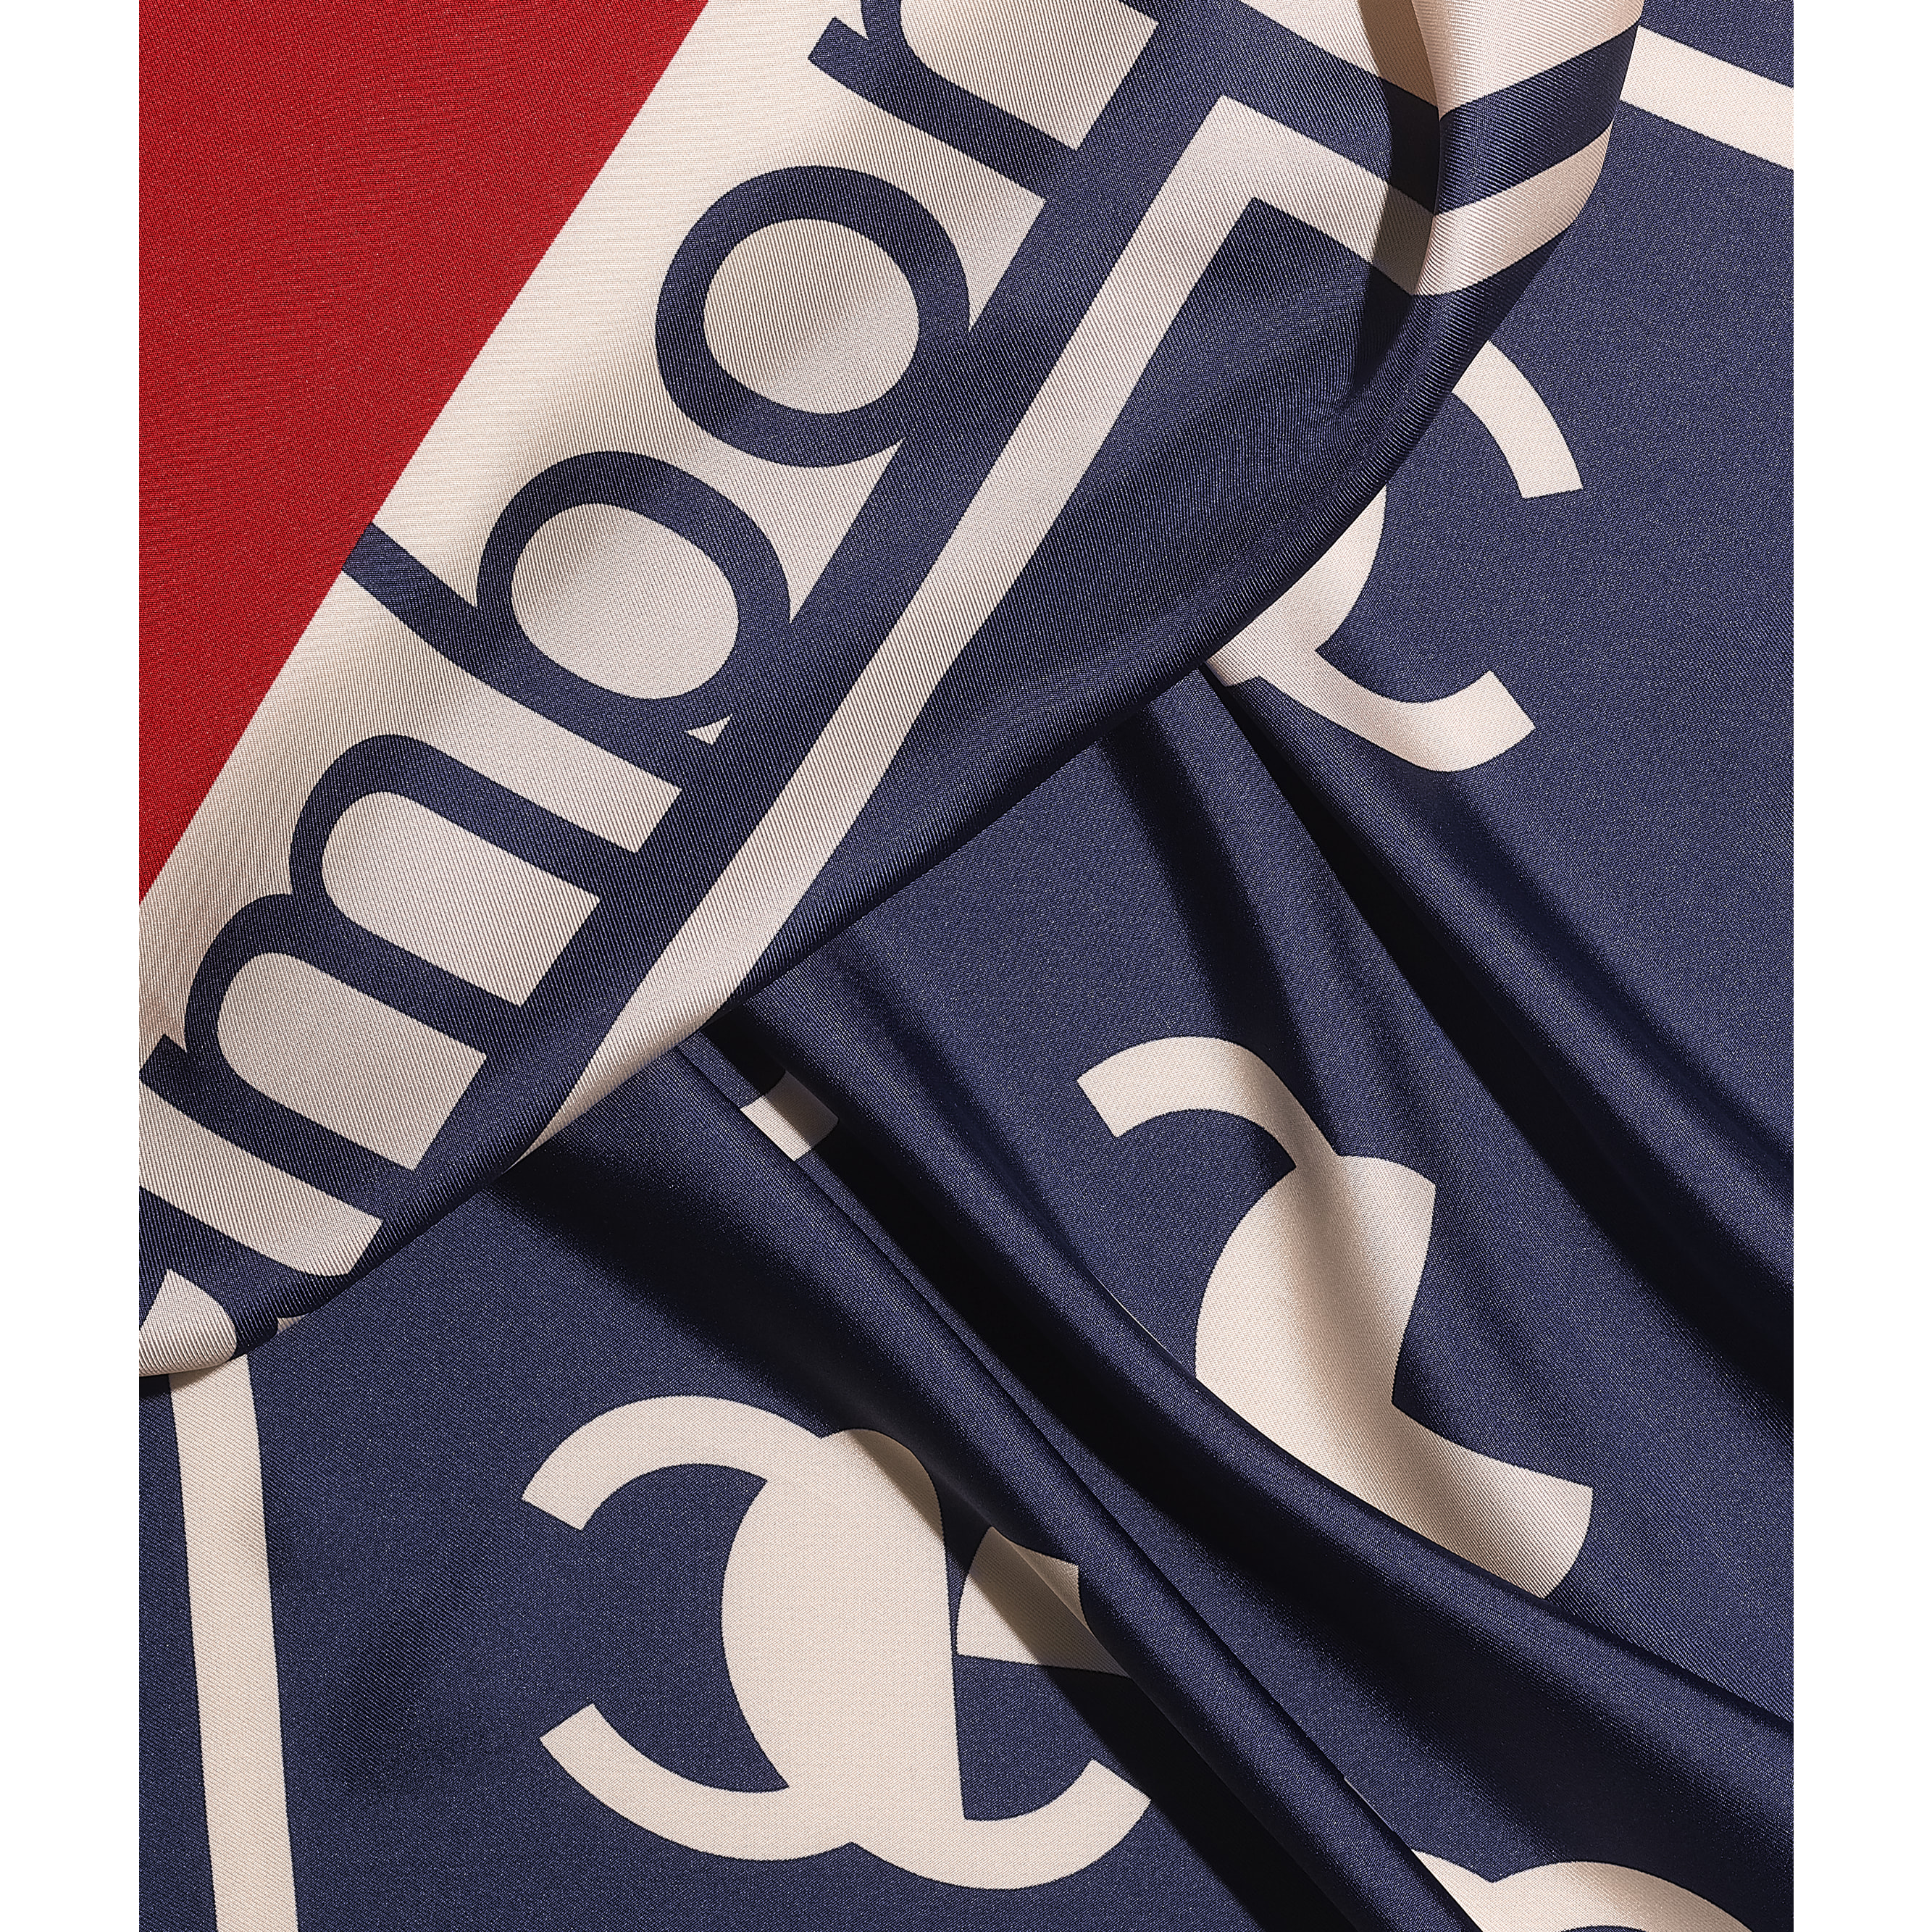 Square Scarf - Ecru, Navy Blue & Red - Silk Twill - CHANEL - Default view - see standard sized version